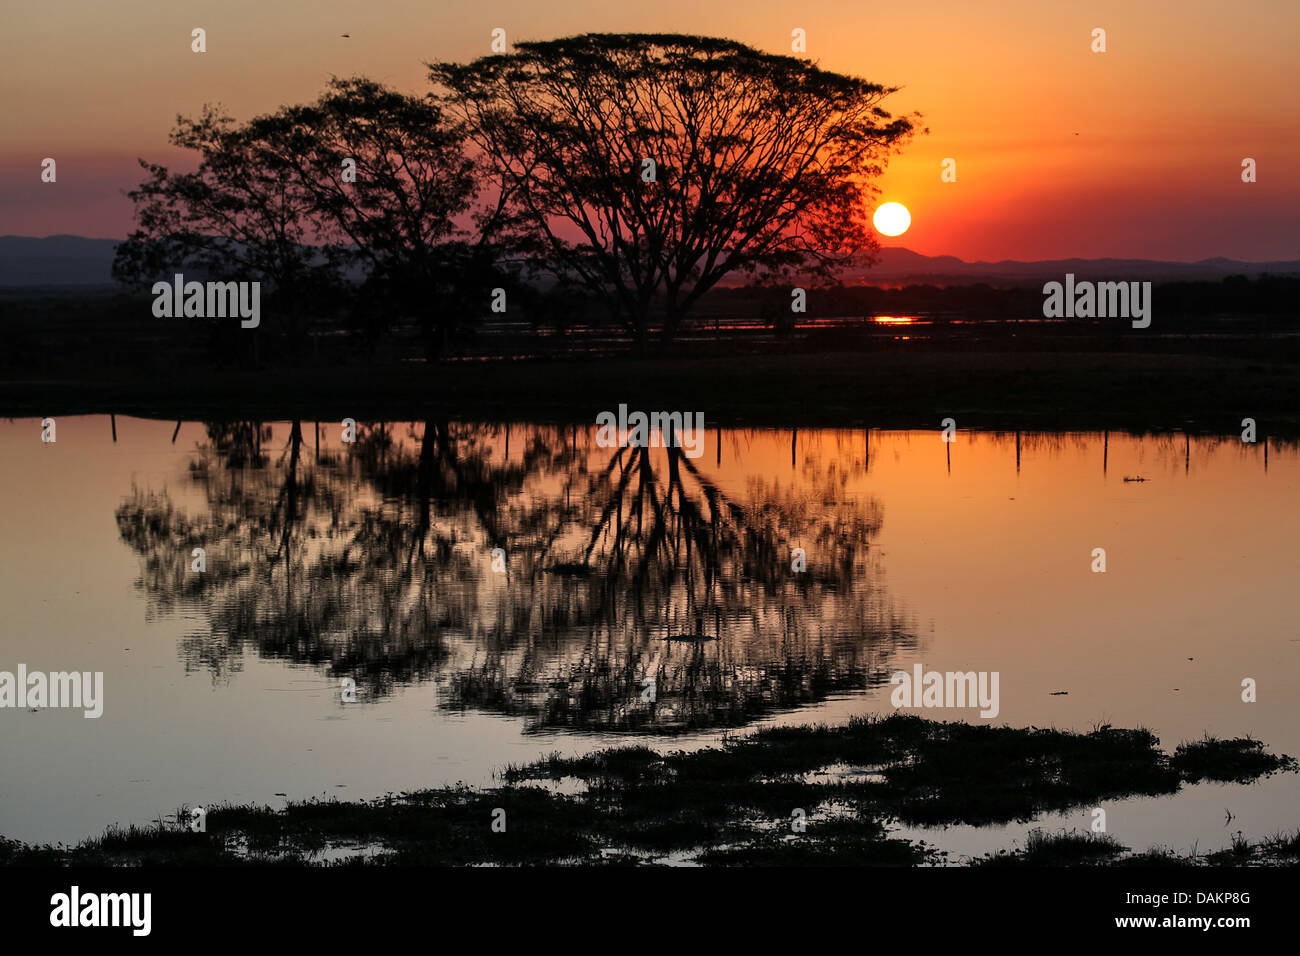 Pantanal Mato Grosso do Sul, Brazil, Mato Grosso do Sul Stock Photo